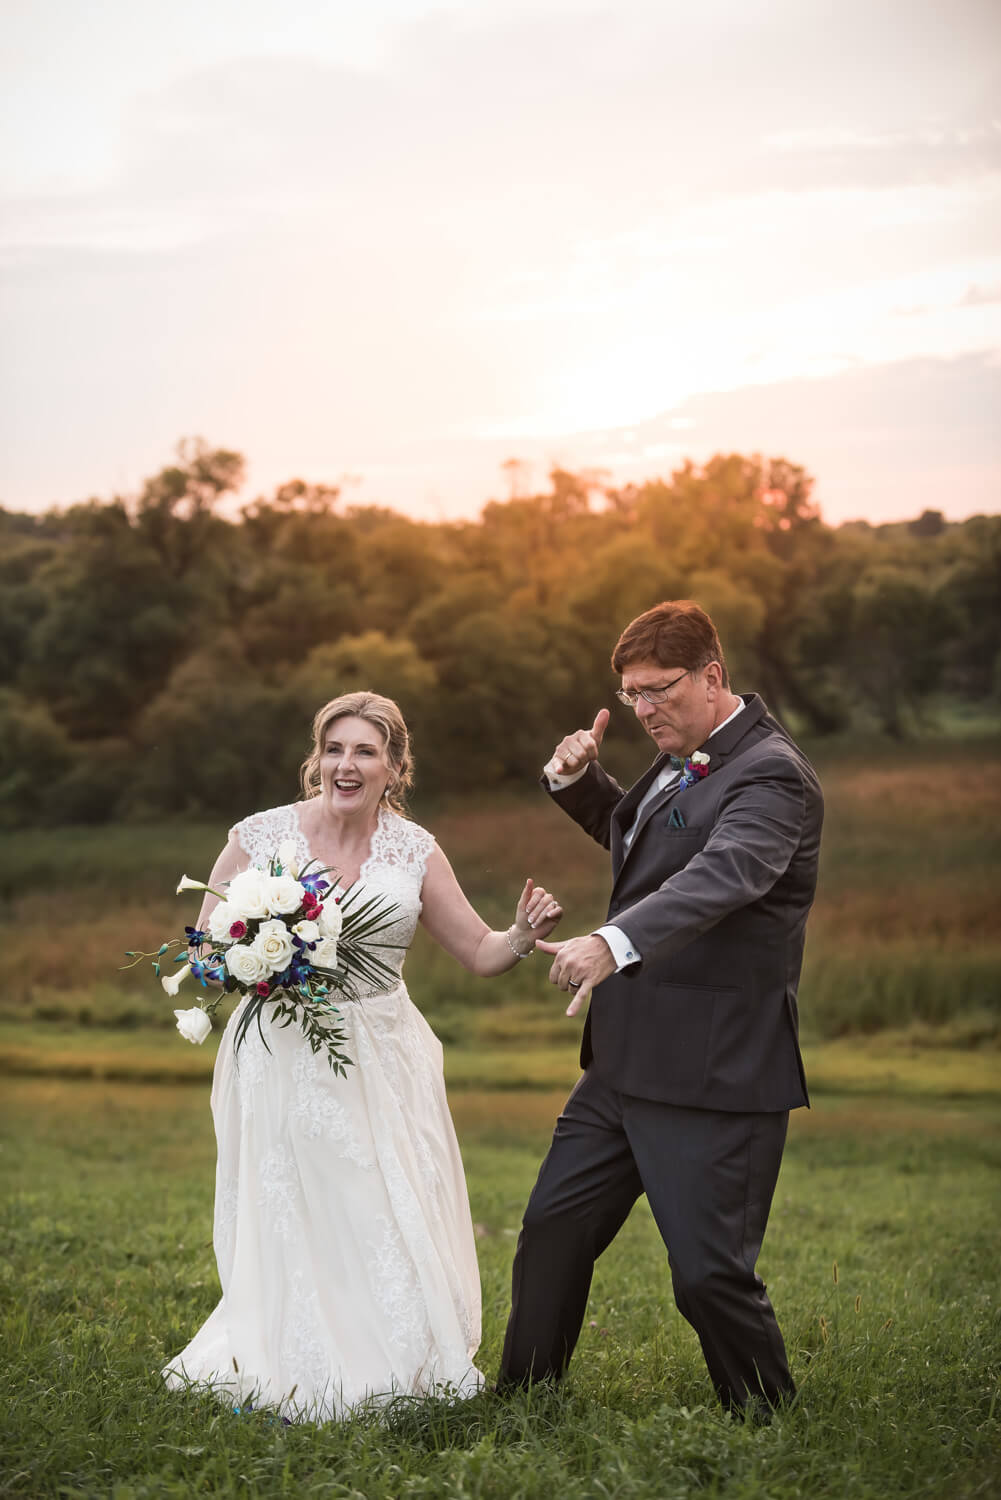 K Solberg Photography | Elm Creek Chalet | Minneapolis day of coordinator Sixpence Events | dancing sunset photo